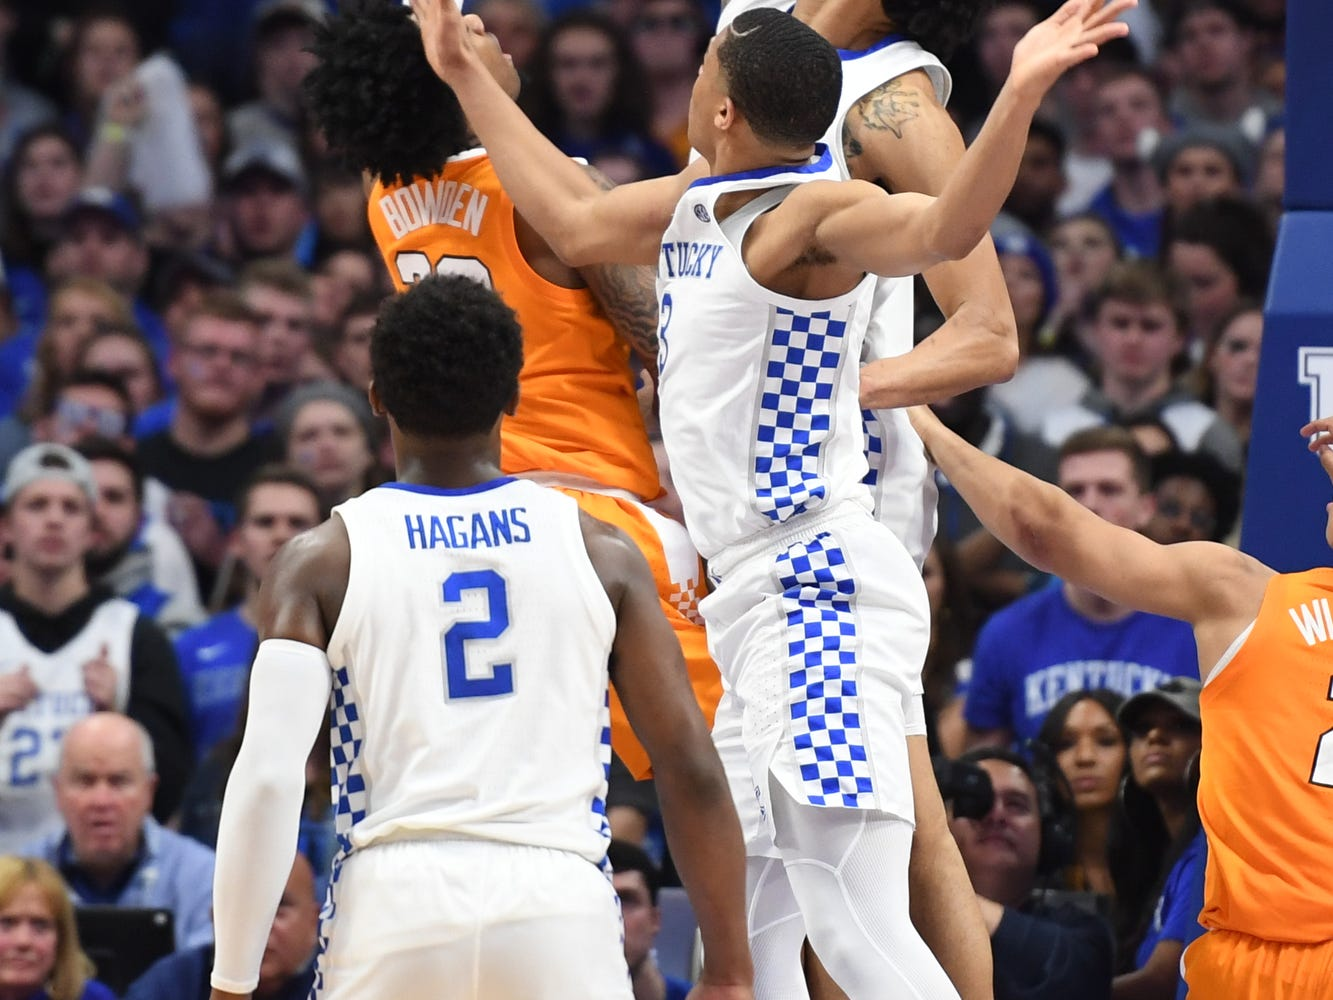 UK F Nick Richards blocks a shot during the University of Kentucky mens basketball game against Tennessee at Rupp Arena in Lexington, Kentucky on Saturday, February 16, 2019.